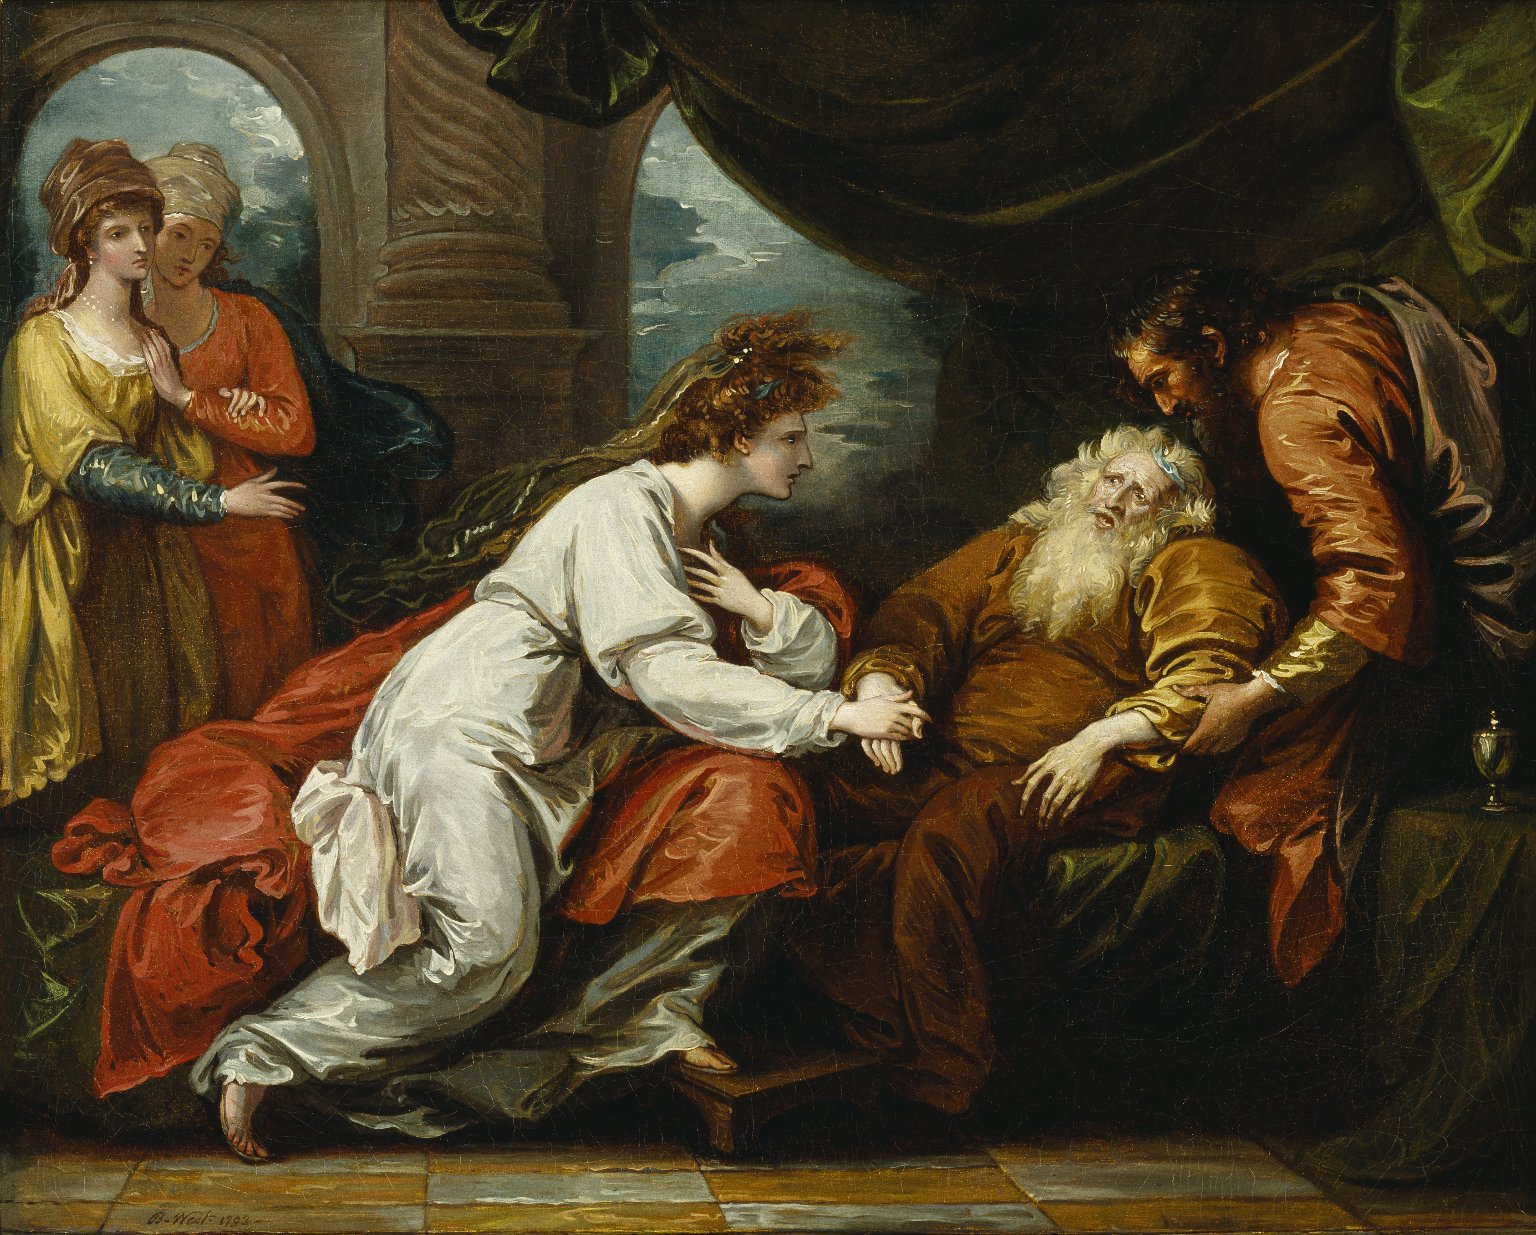 King Lear and Cordelia [graphic] / B. West, 1793.